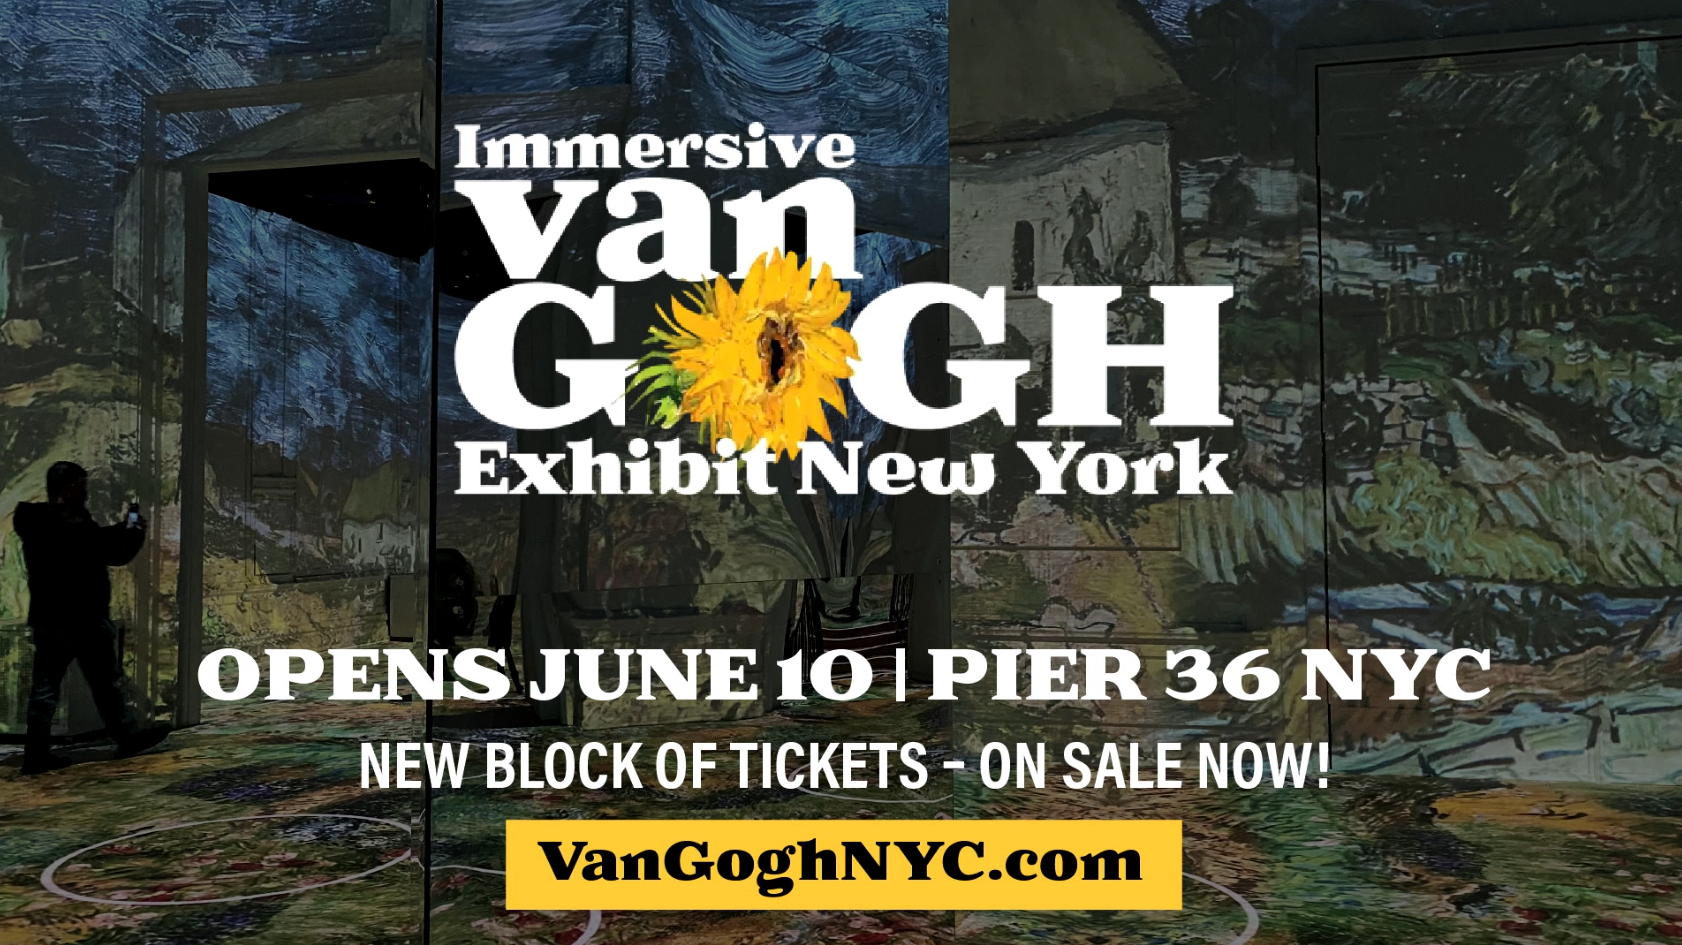 Immersive Van Gogh New York City Press Event